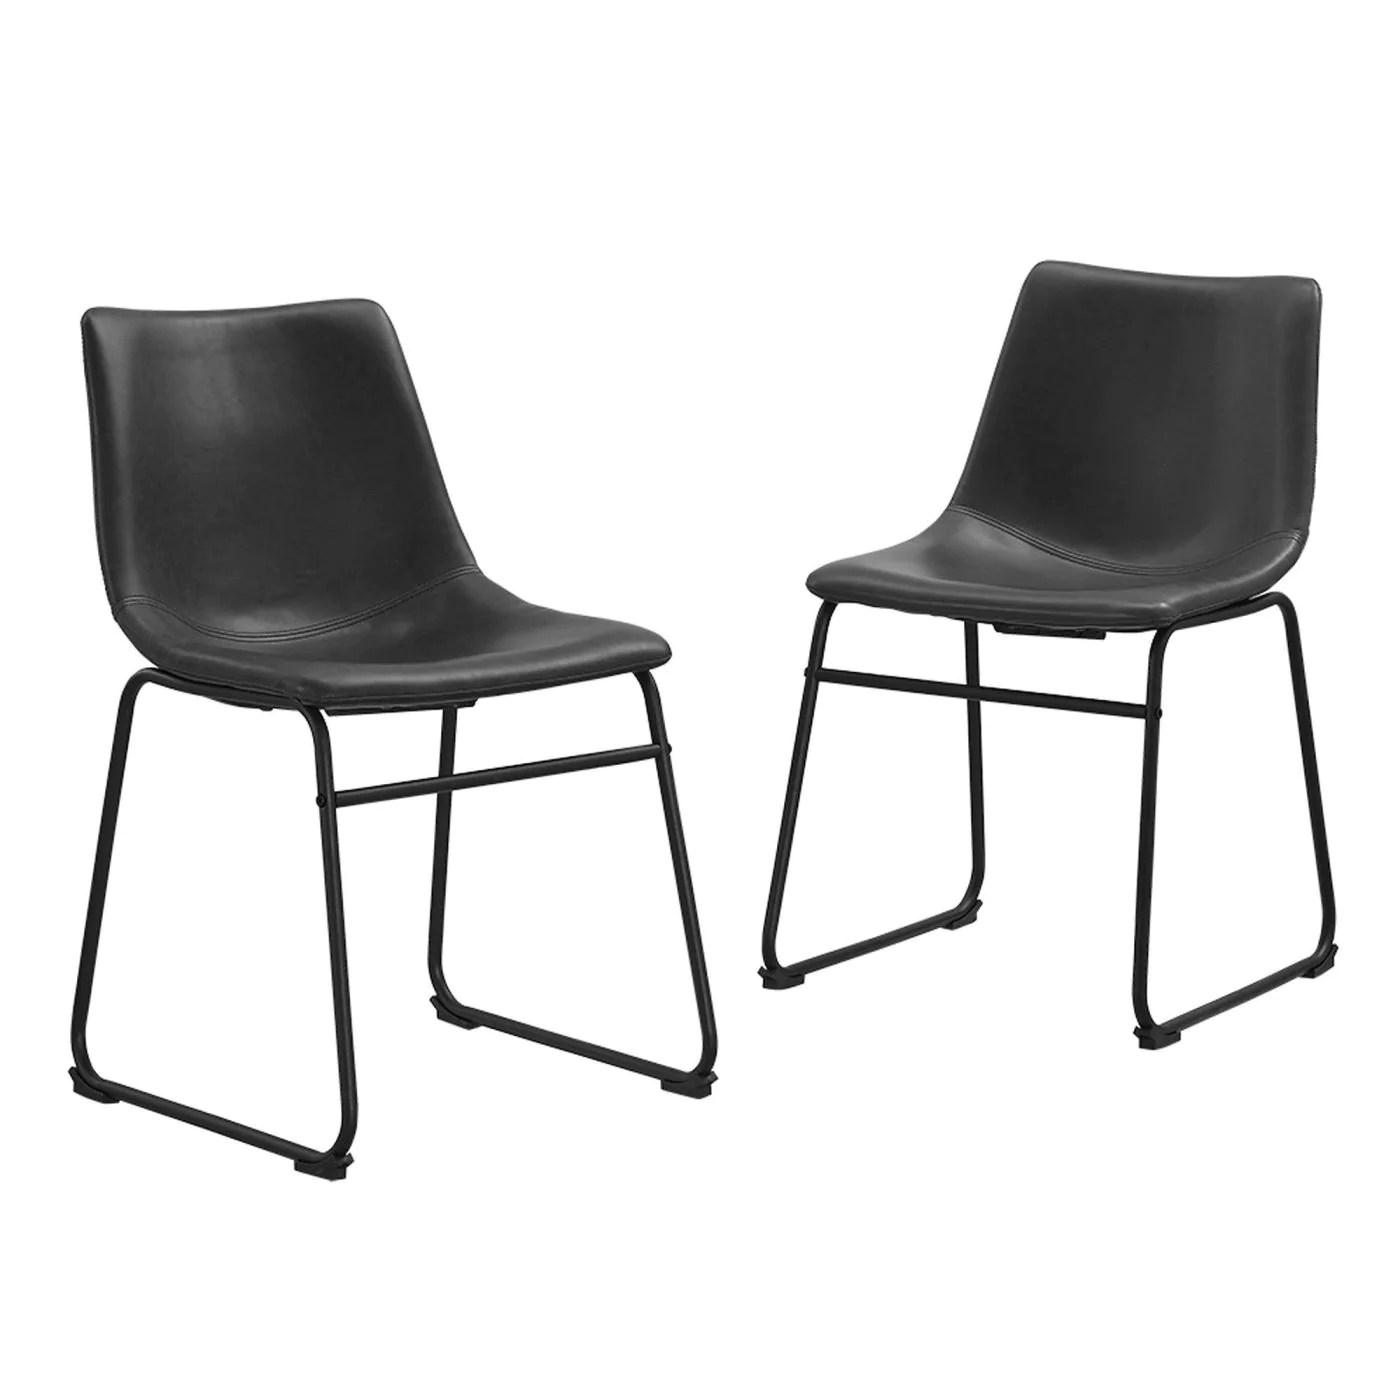 industrial style dining chairs outdoor with cushions modern furniture decor at contemporary warehouse